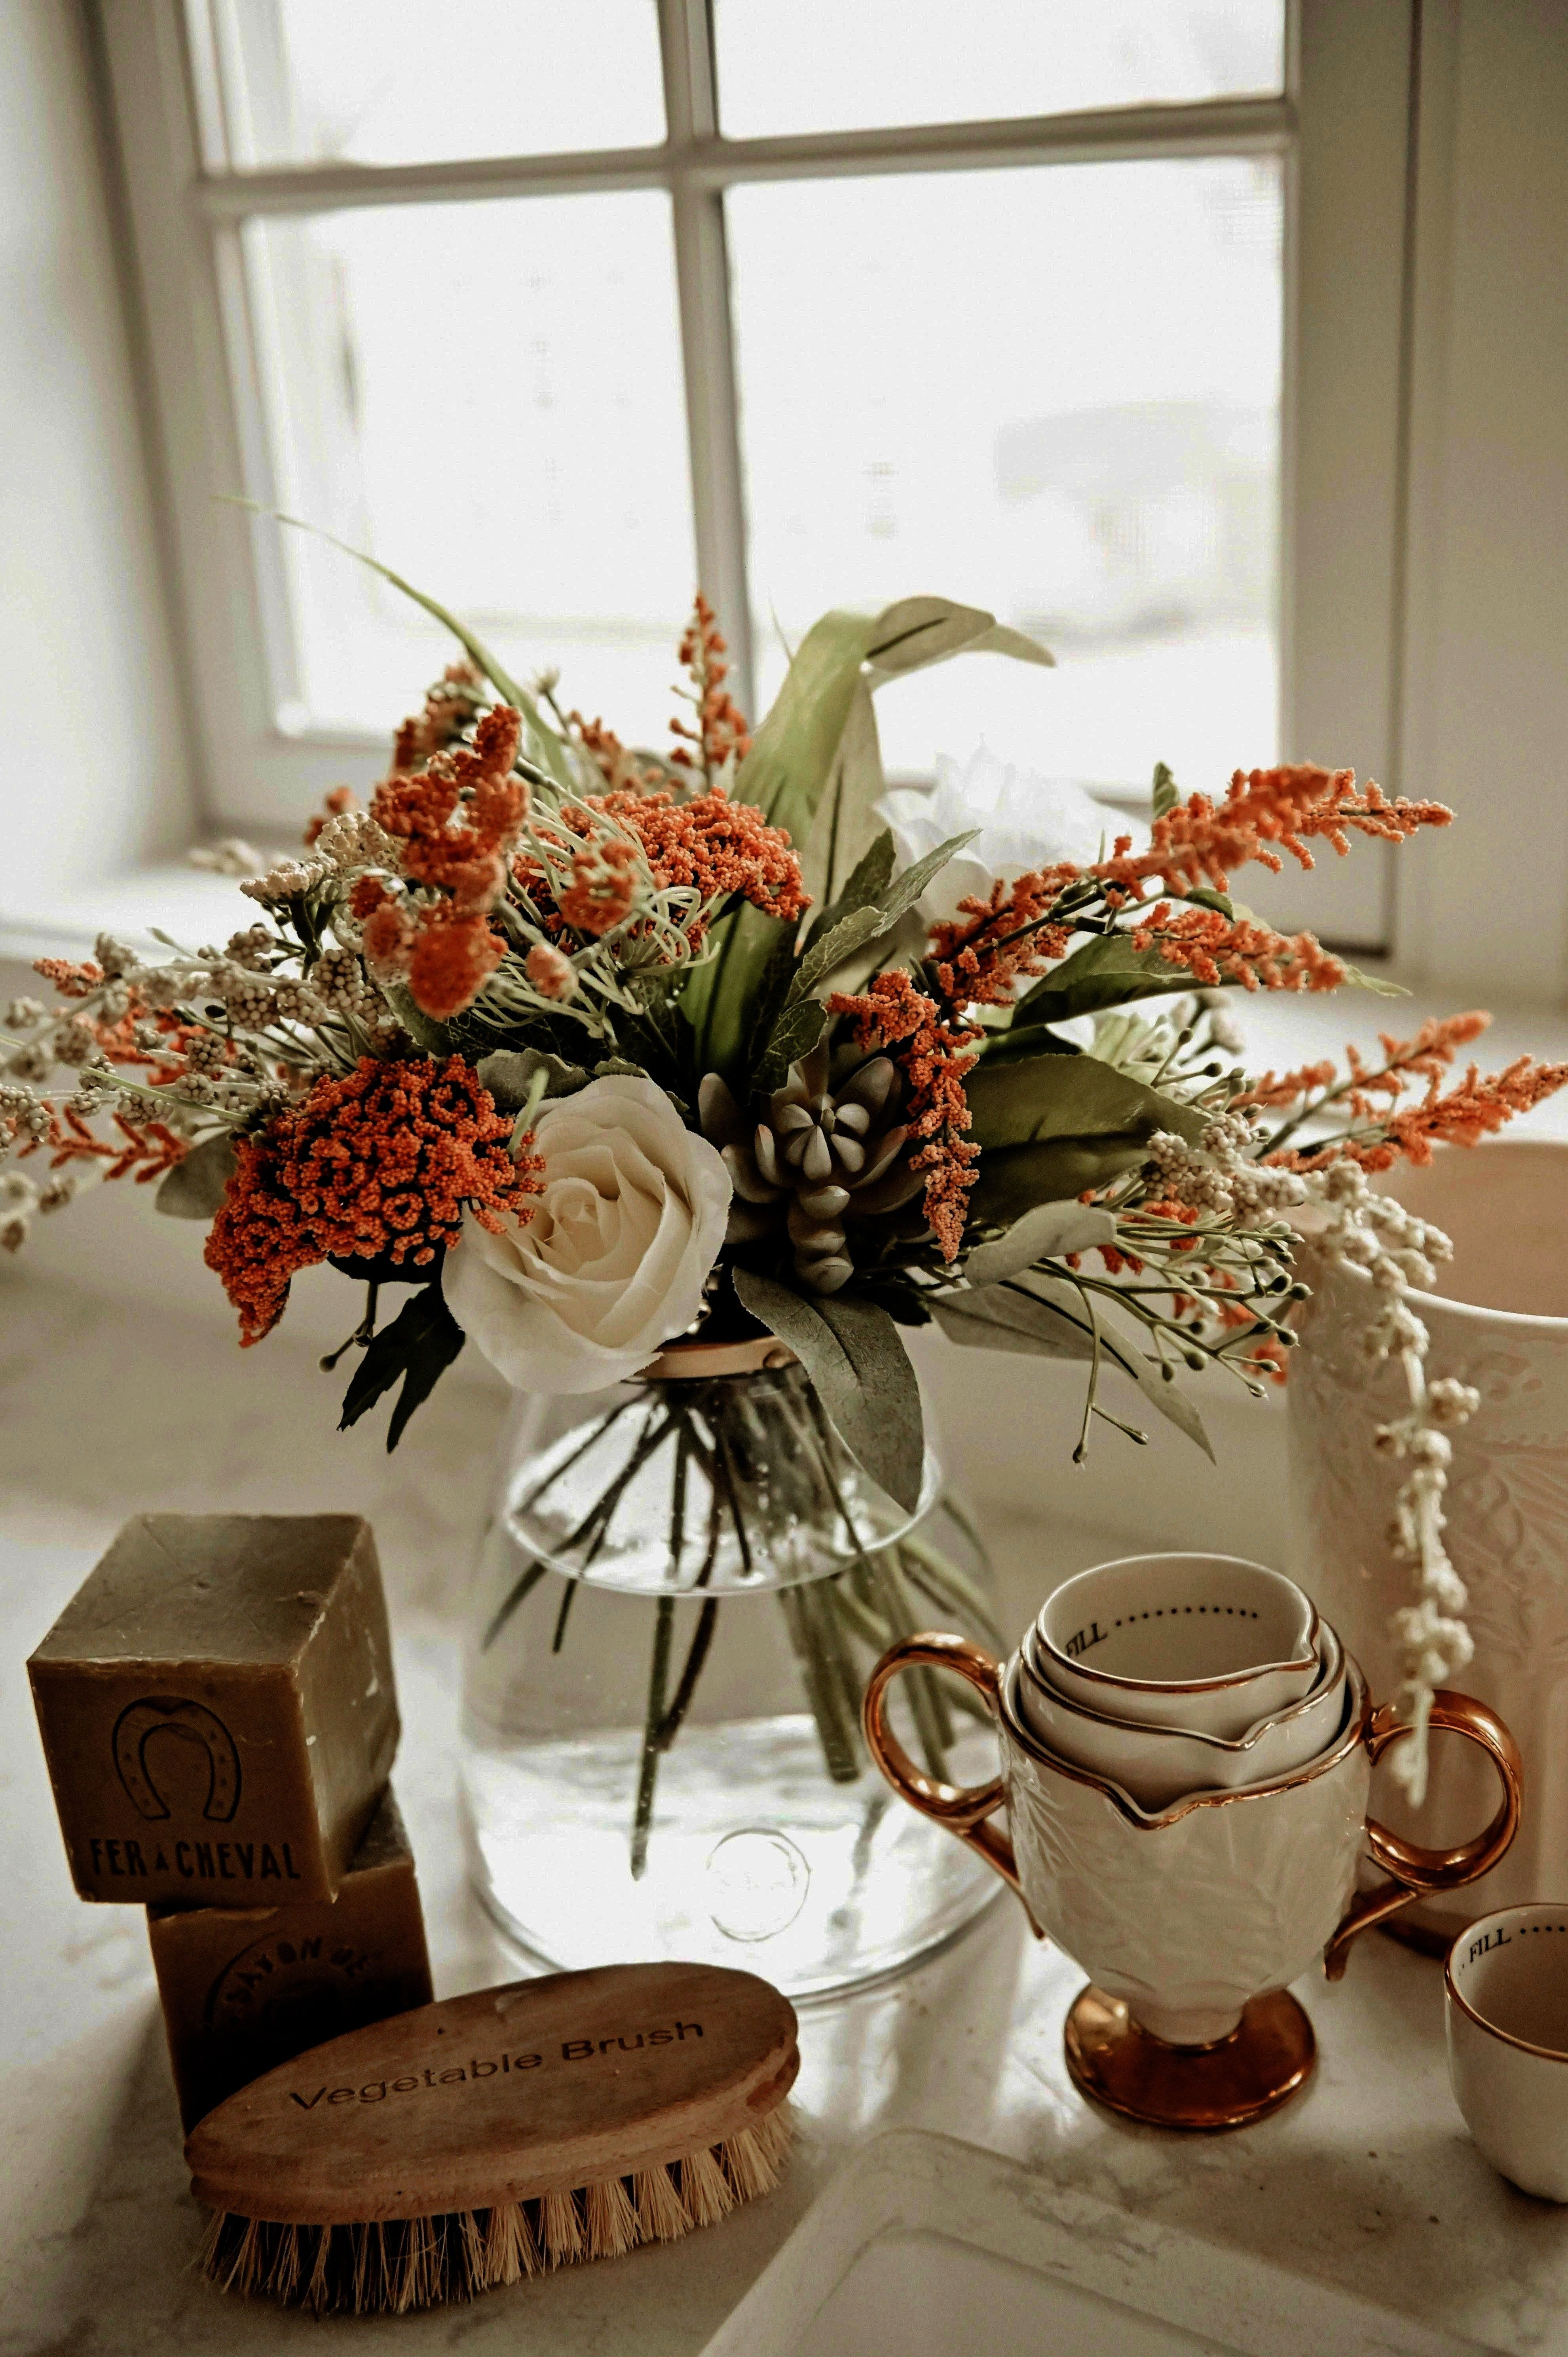 Faux Floral Arranging  The Easiest Trick For Fool Proof Faux Floral Arranging The Easiest Trick For Fool Proof Faux Floral Arranging  The Easiest Trick For Fool Proof Fau...